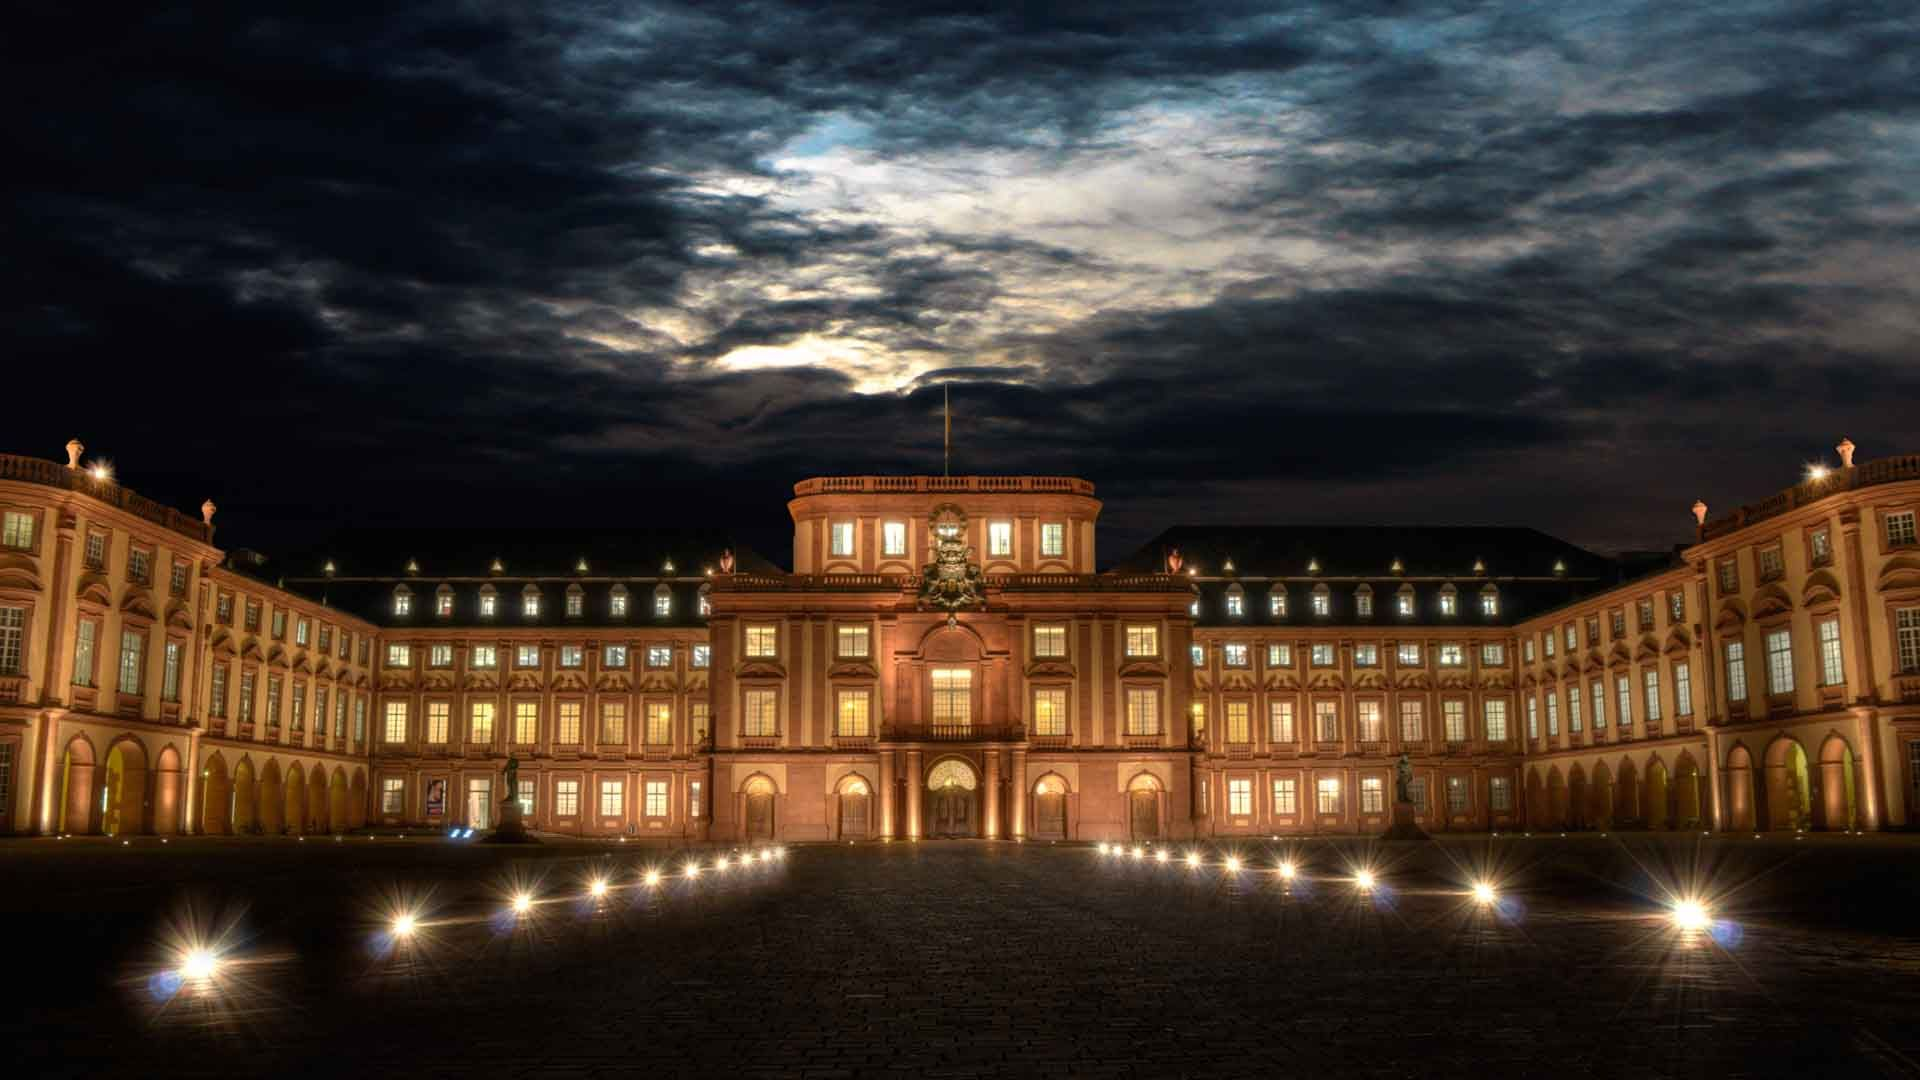 Mannheim University At Night Hd Wallpaper Wallpaper List 1920x1080